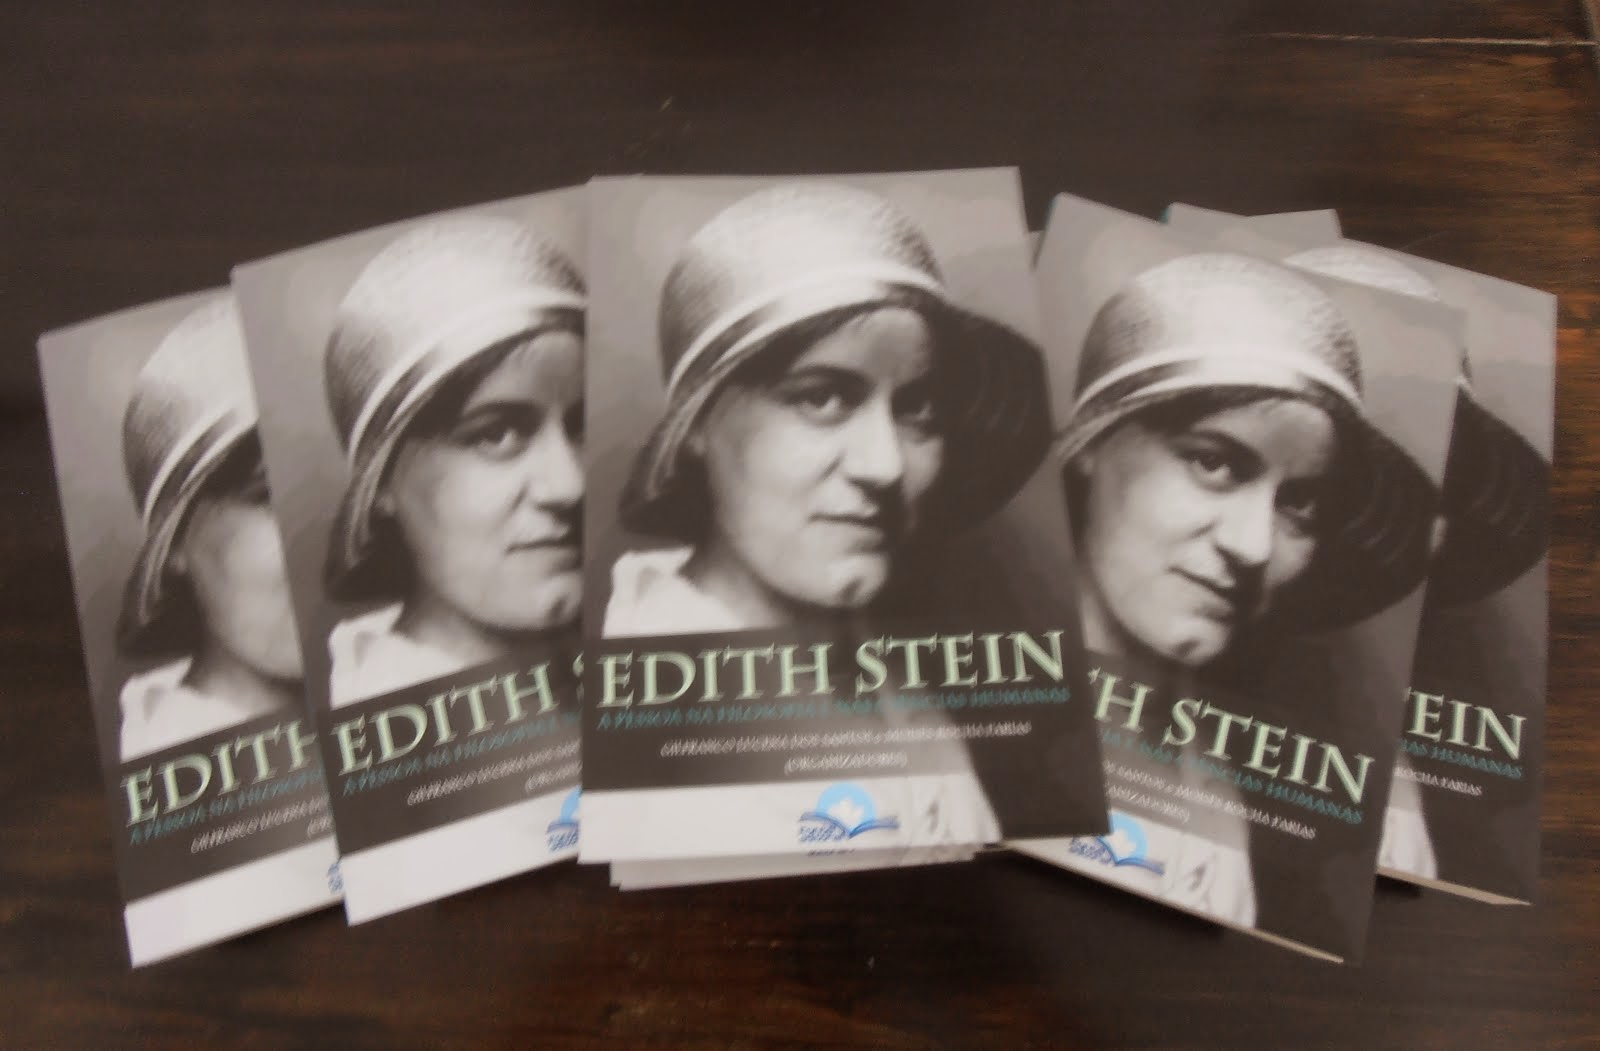 Textos do II Simpósio Internacional Edith Stein